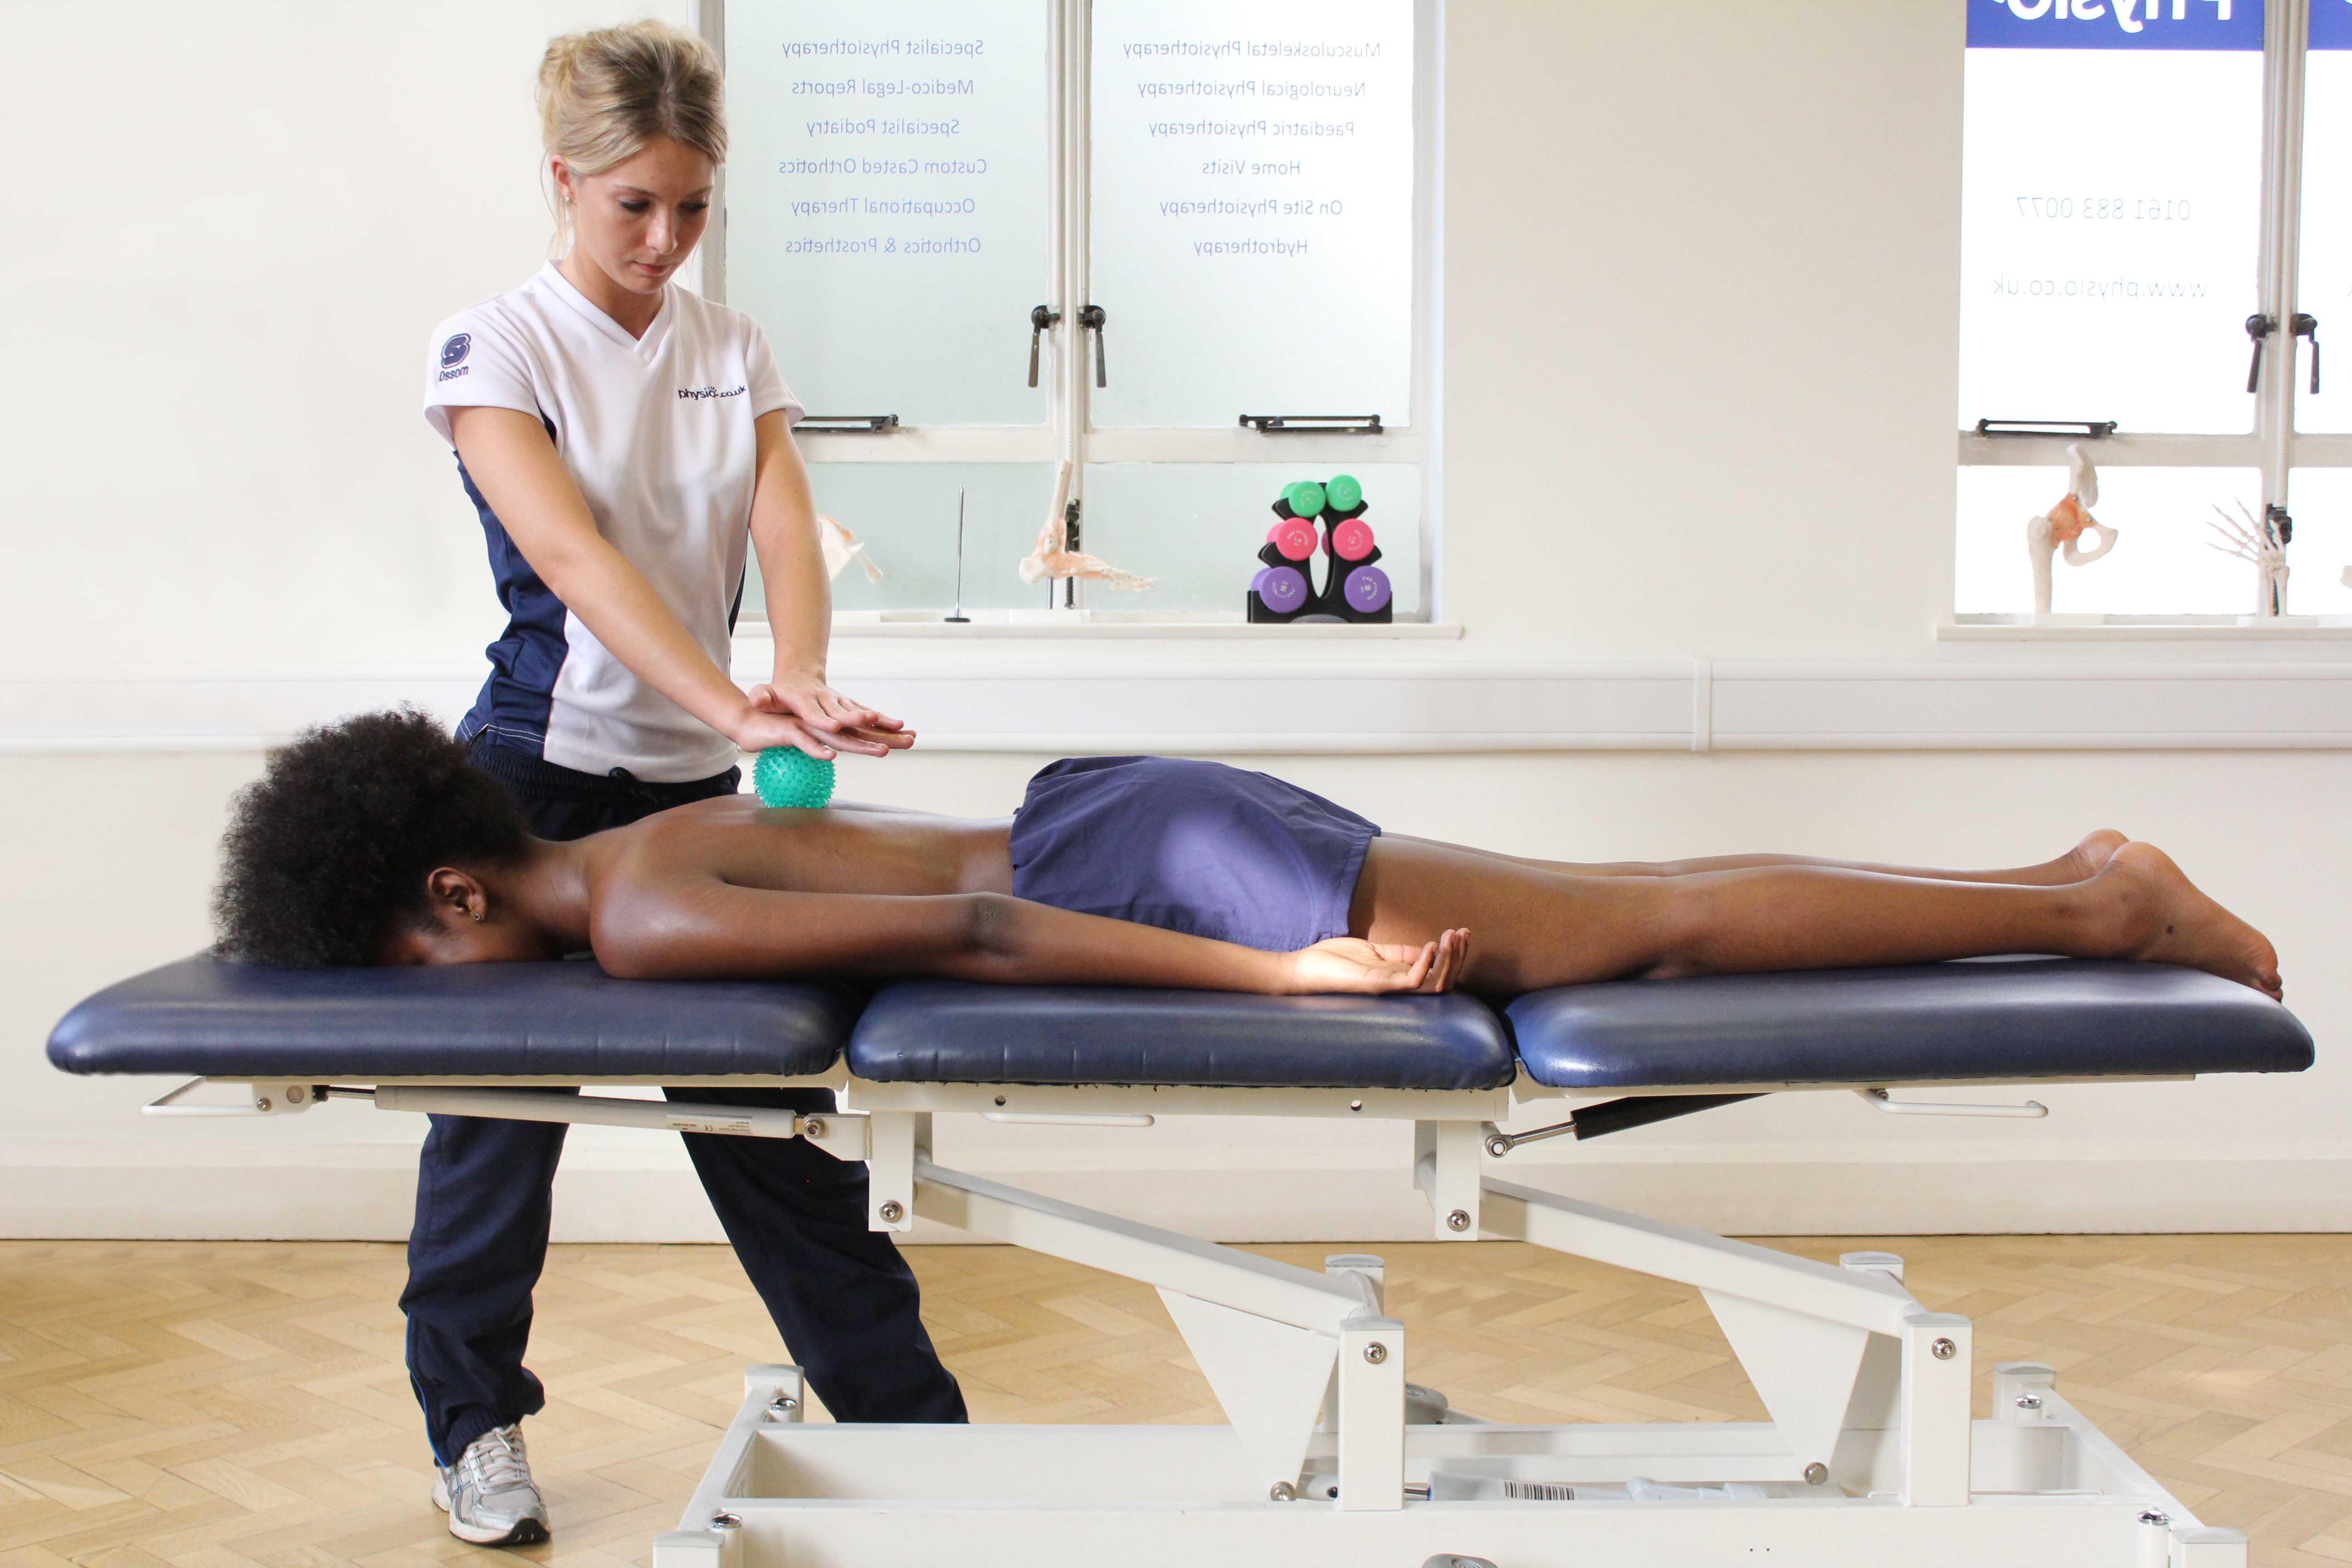 Soft tissue massage of the upper back muscles using a therapy aid